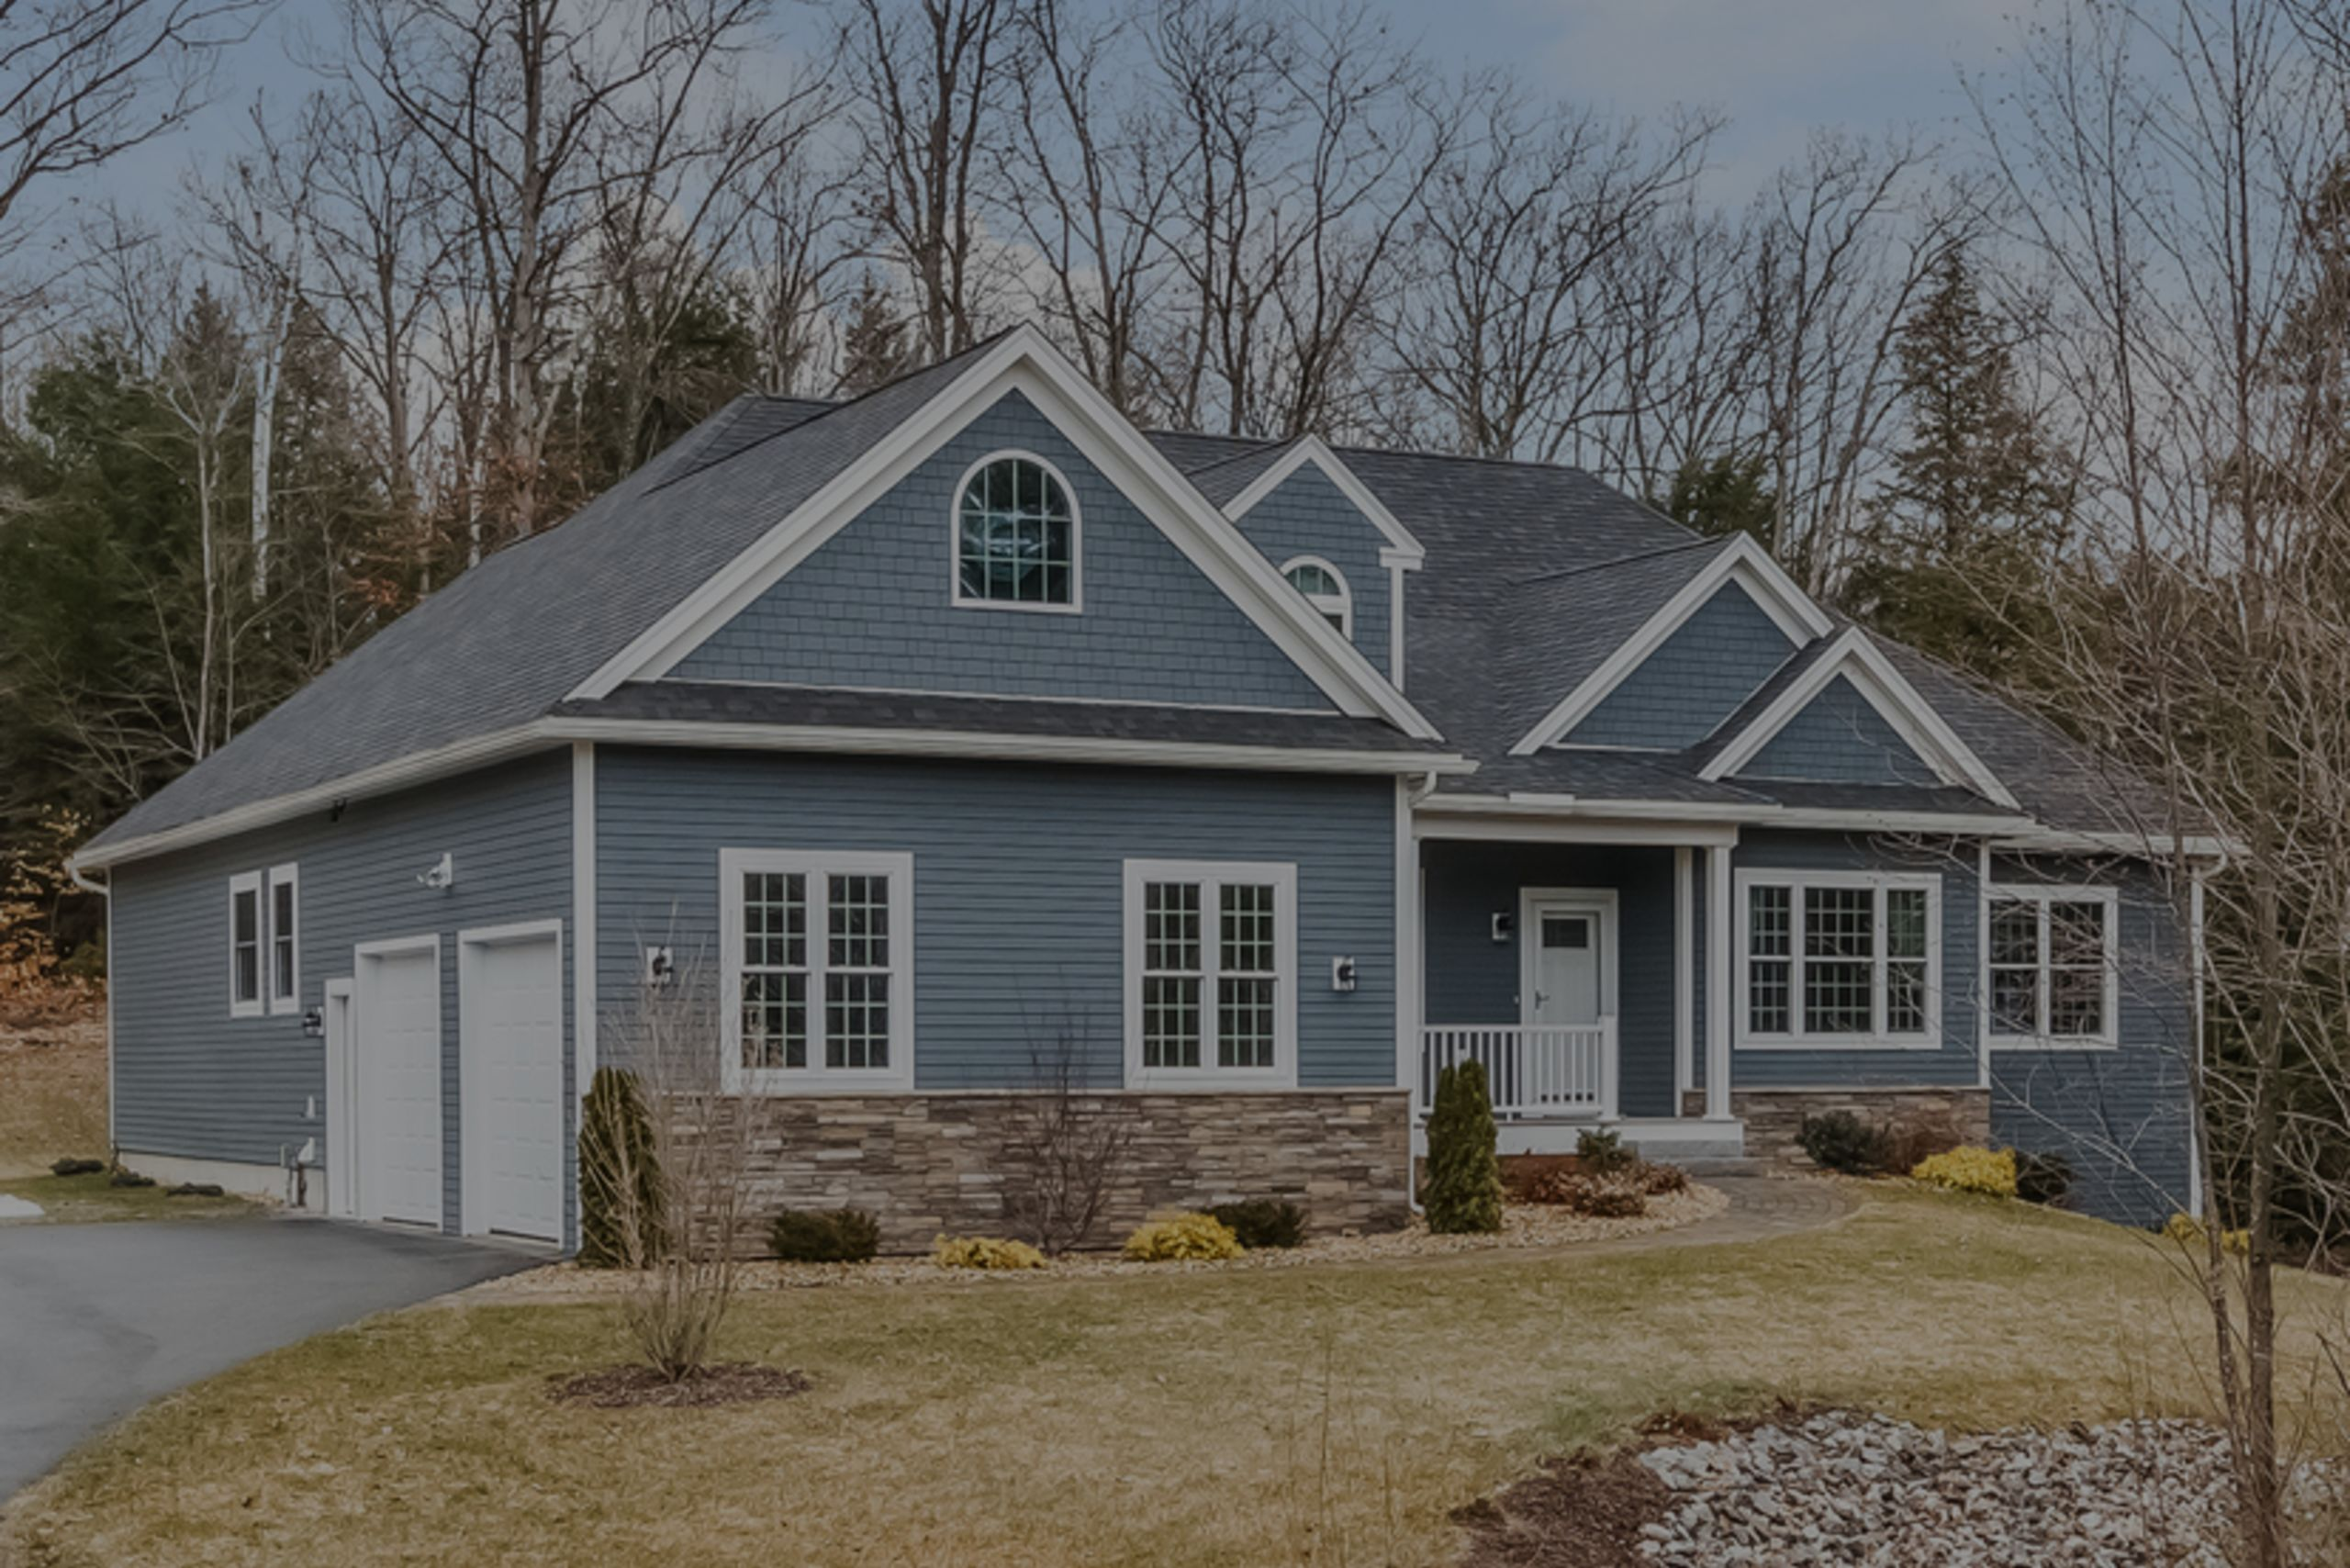 Georgeous Southern New Hampshire Home w/ First Floor Master |Sandown, New Hampshire